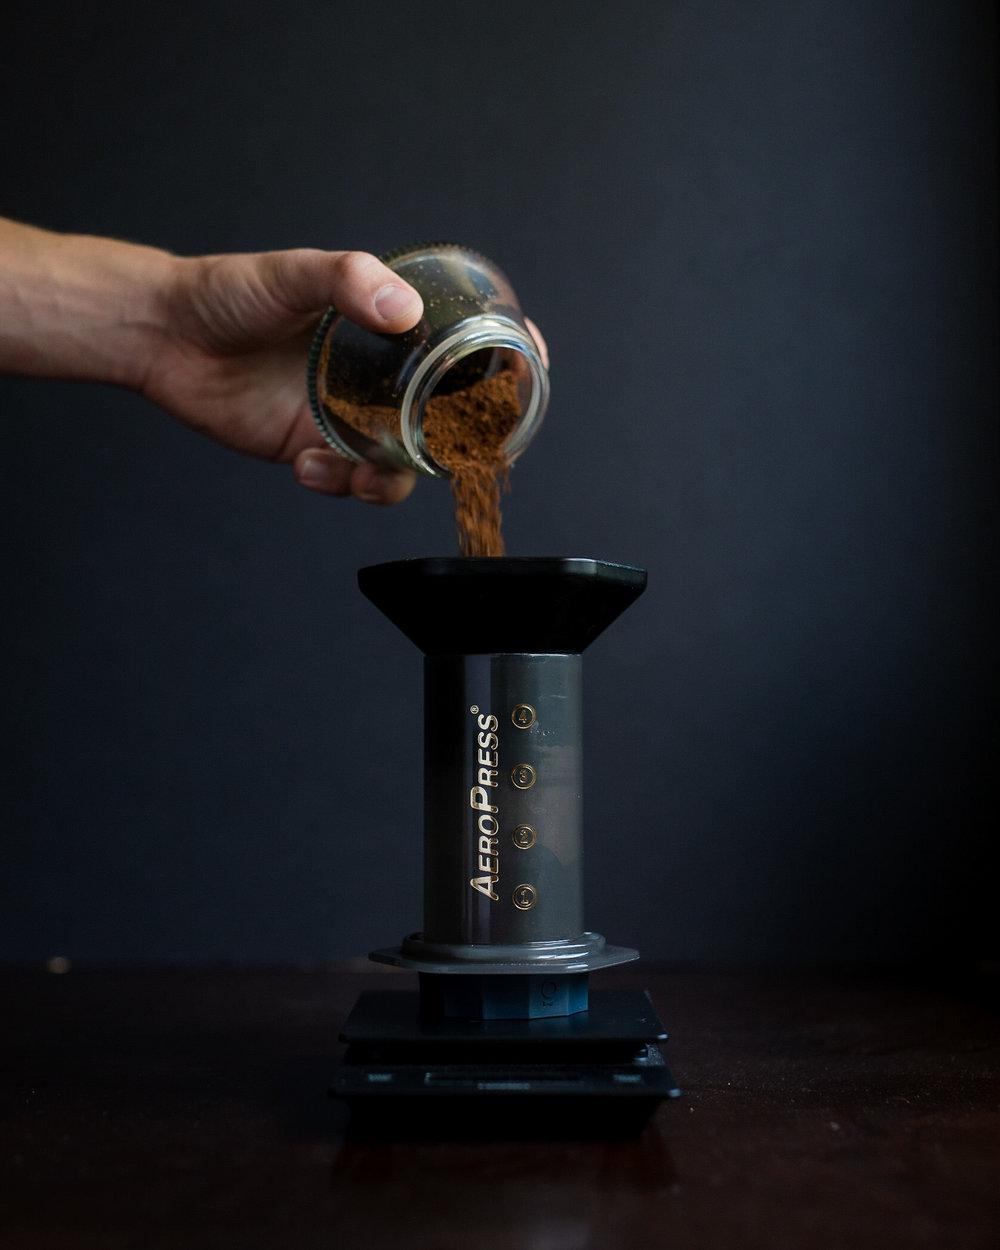 Add the ground coffee to the Aeropress